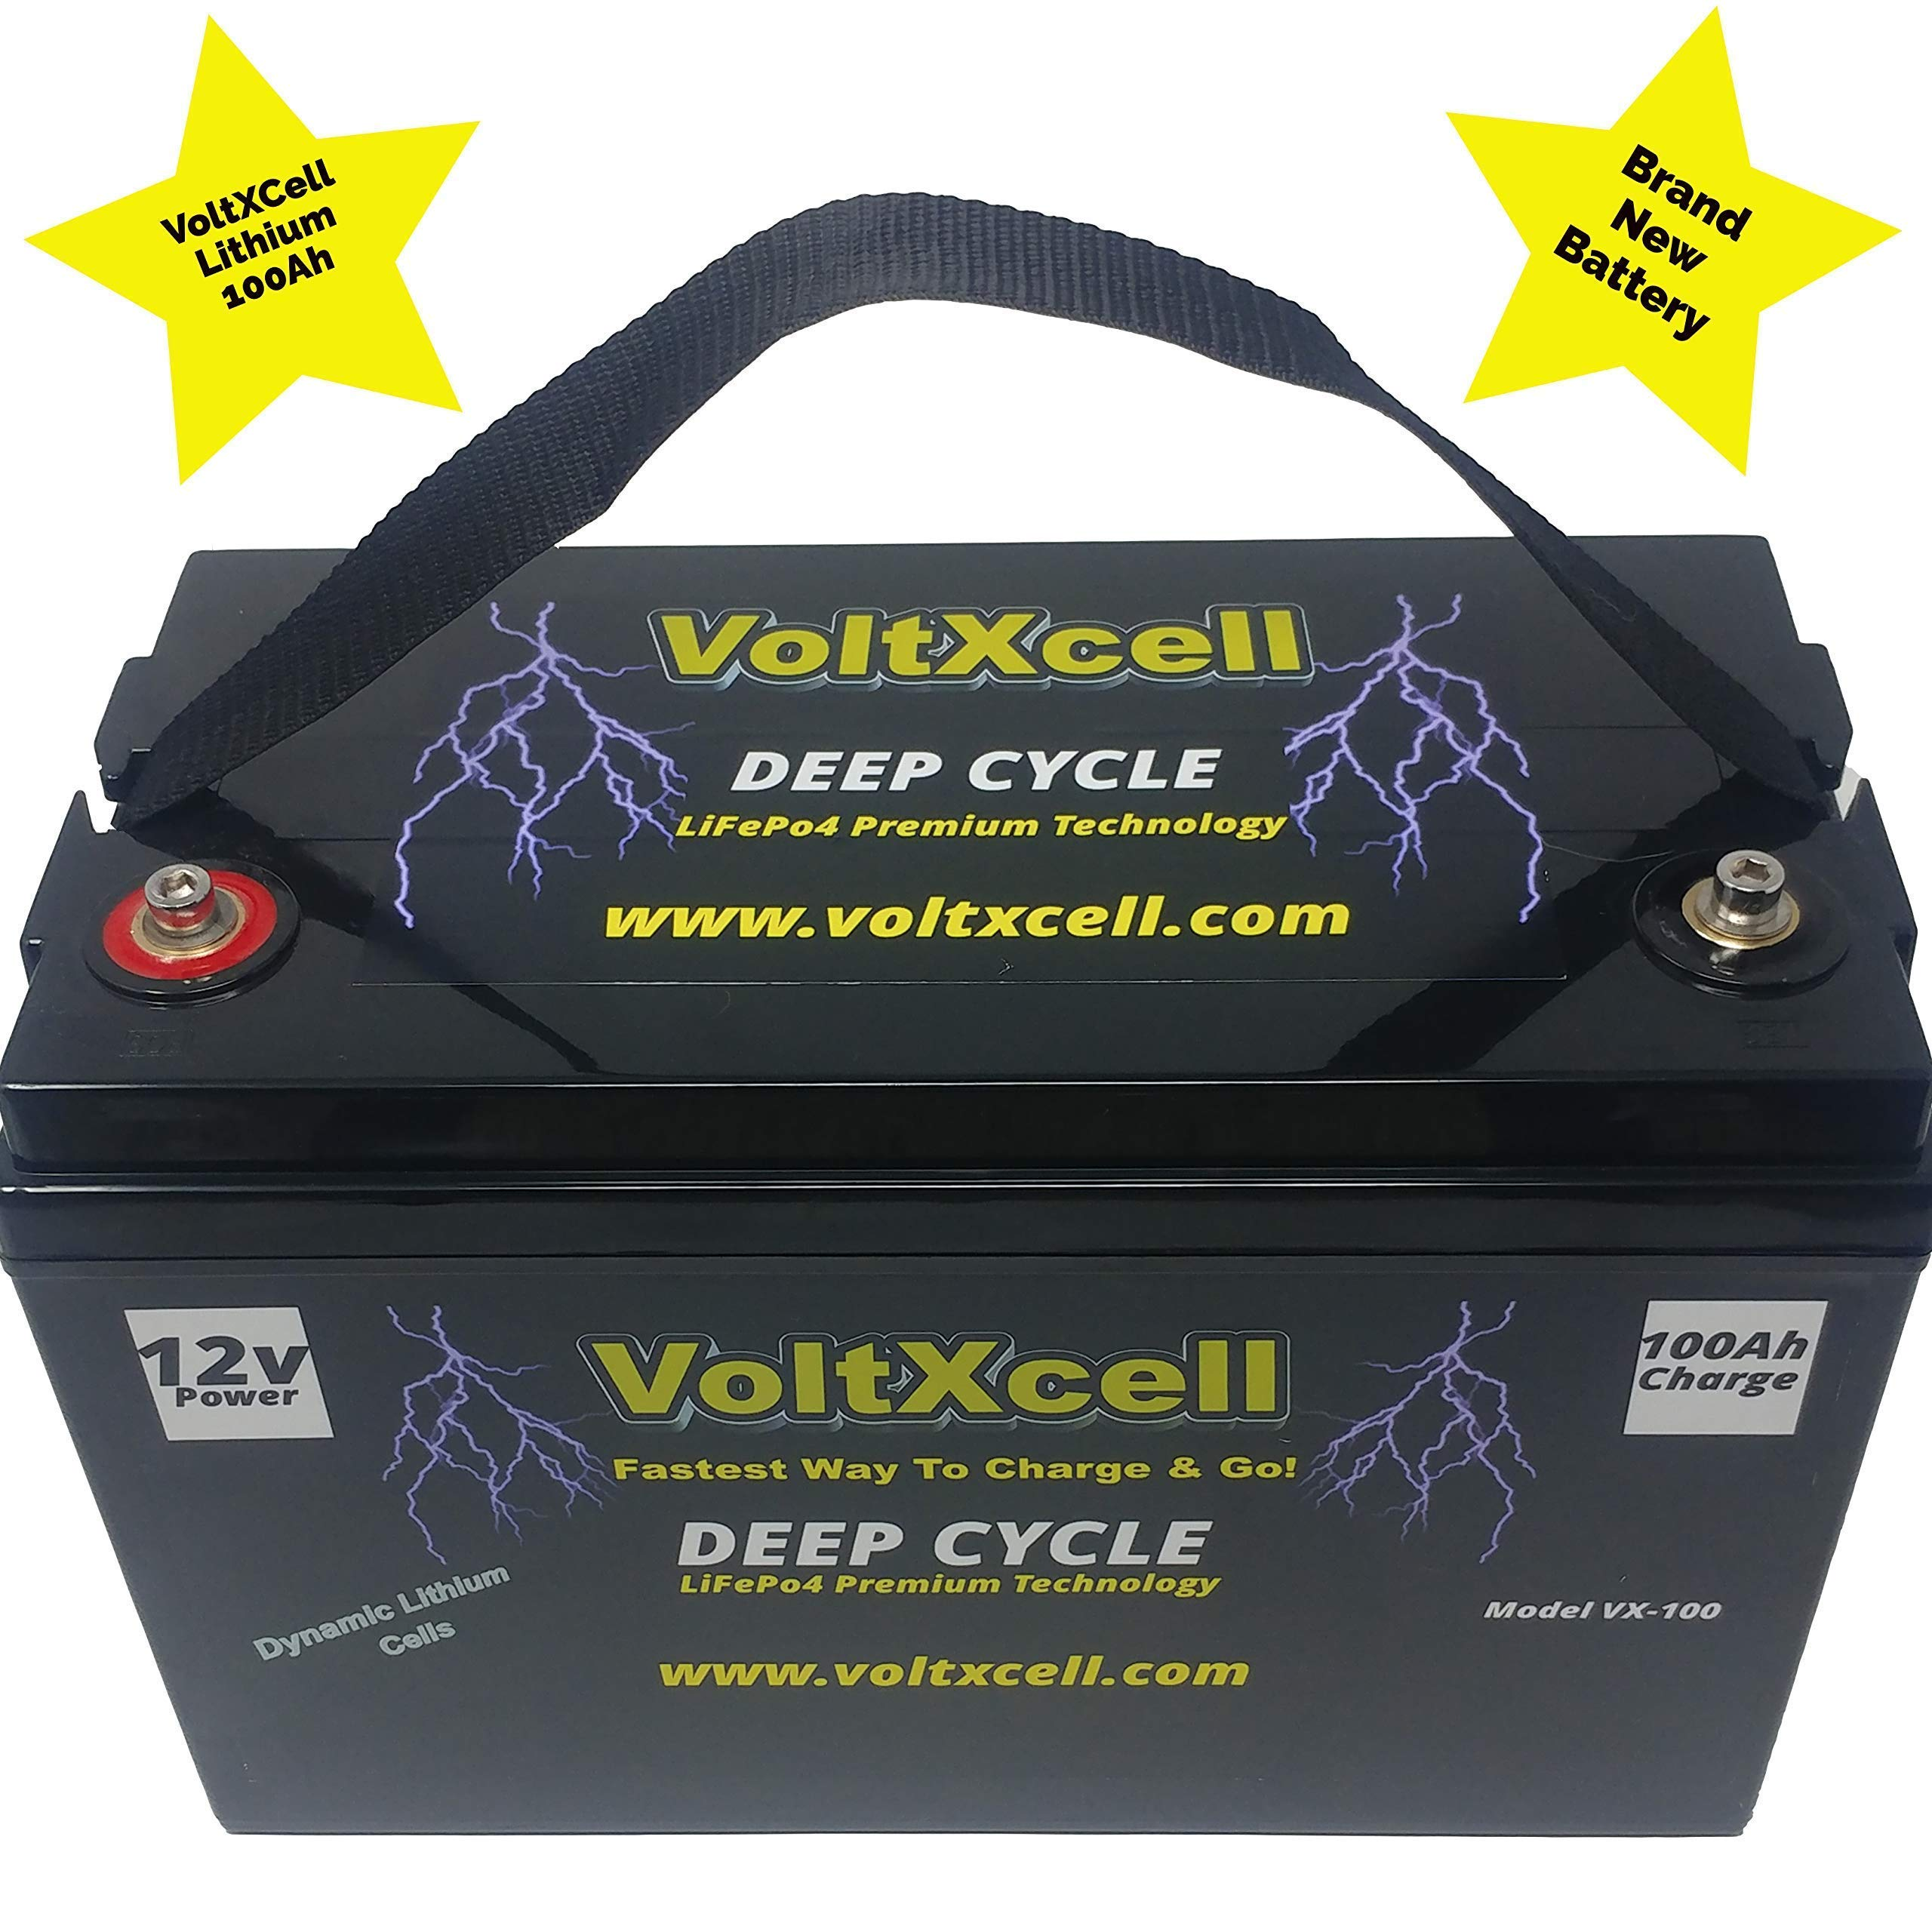 Lithium Battery VoltXcell Delivery Included